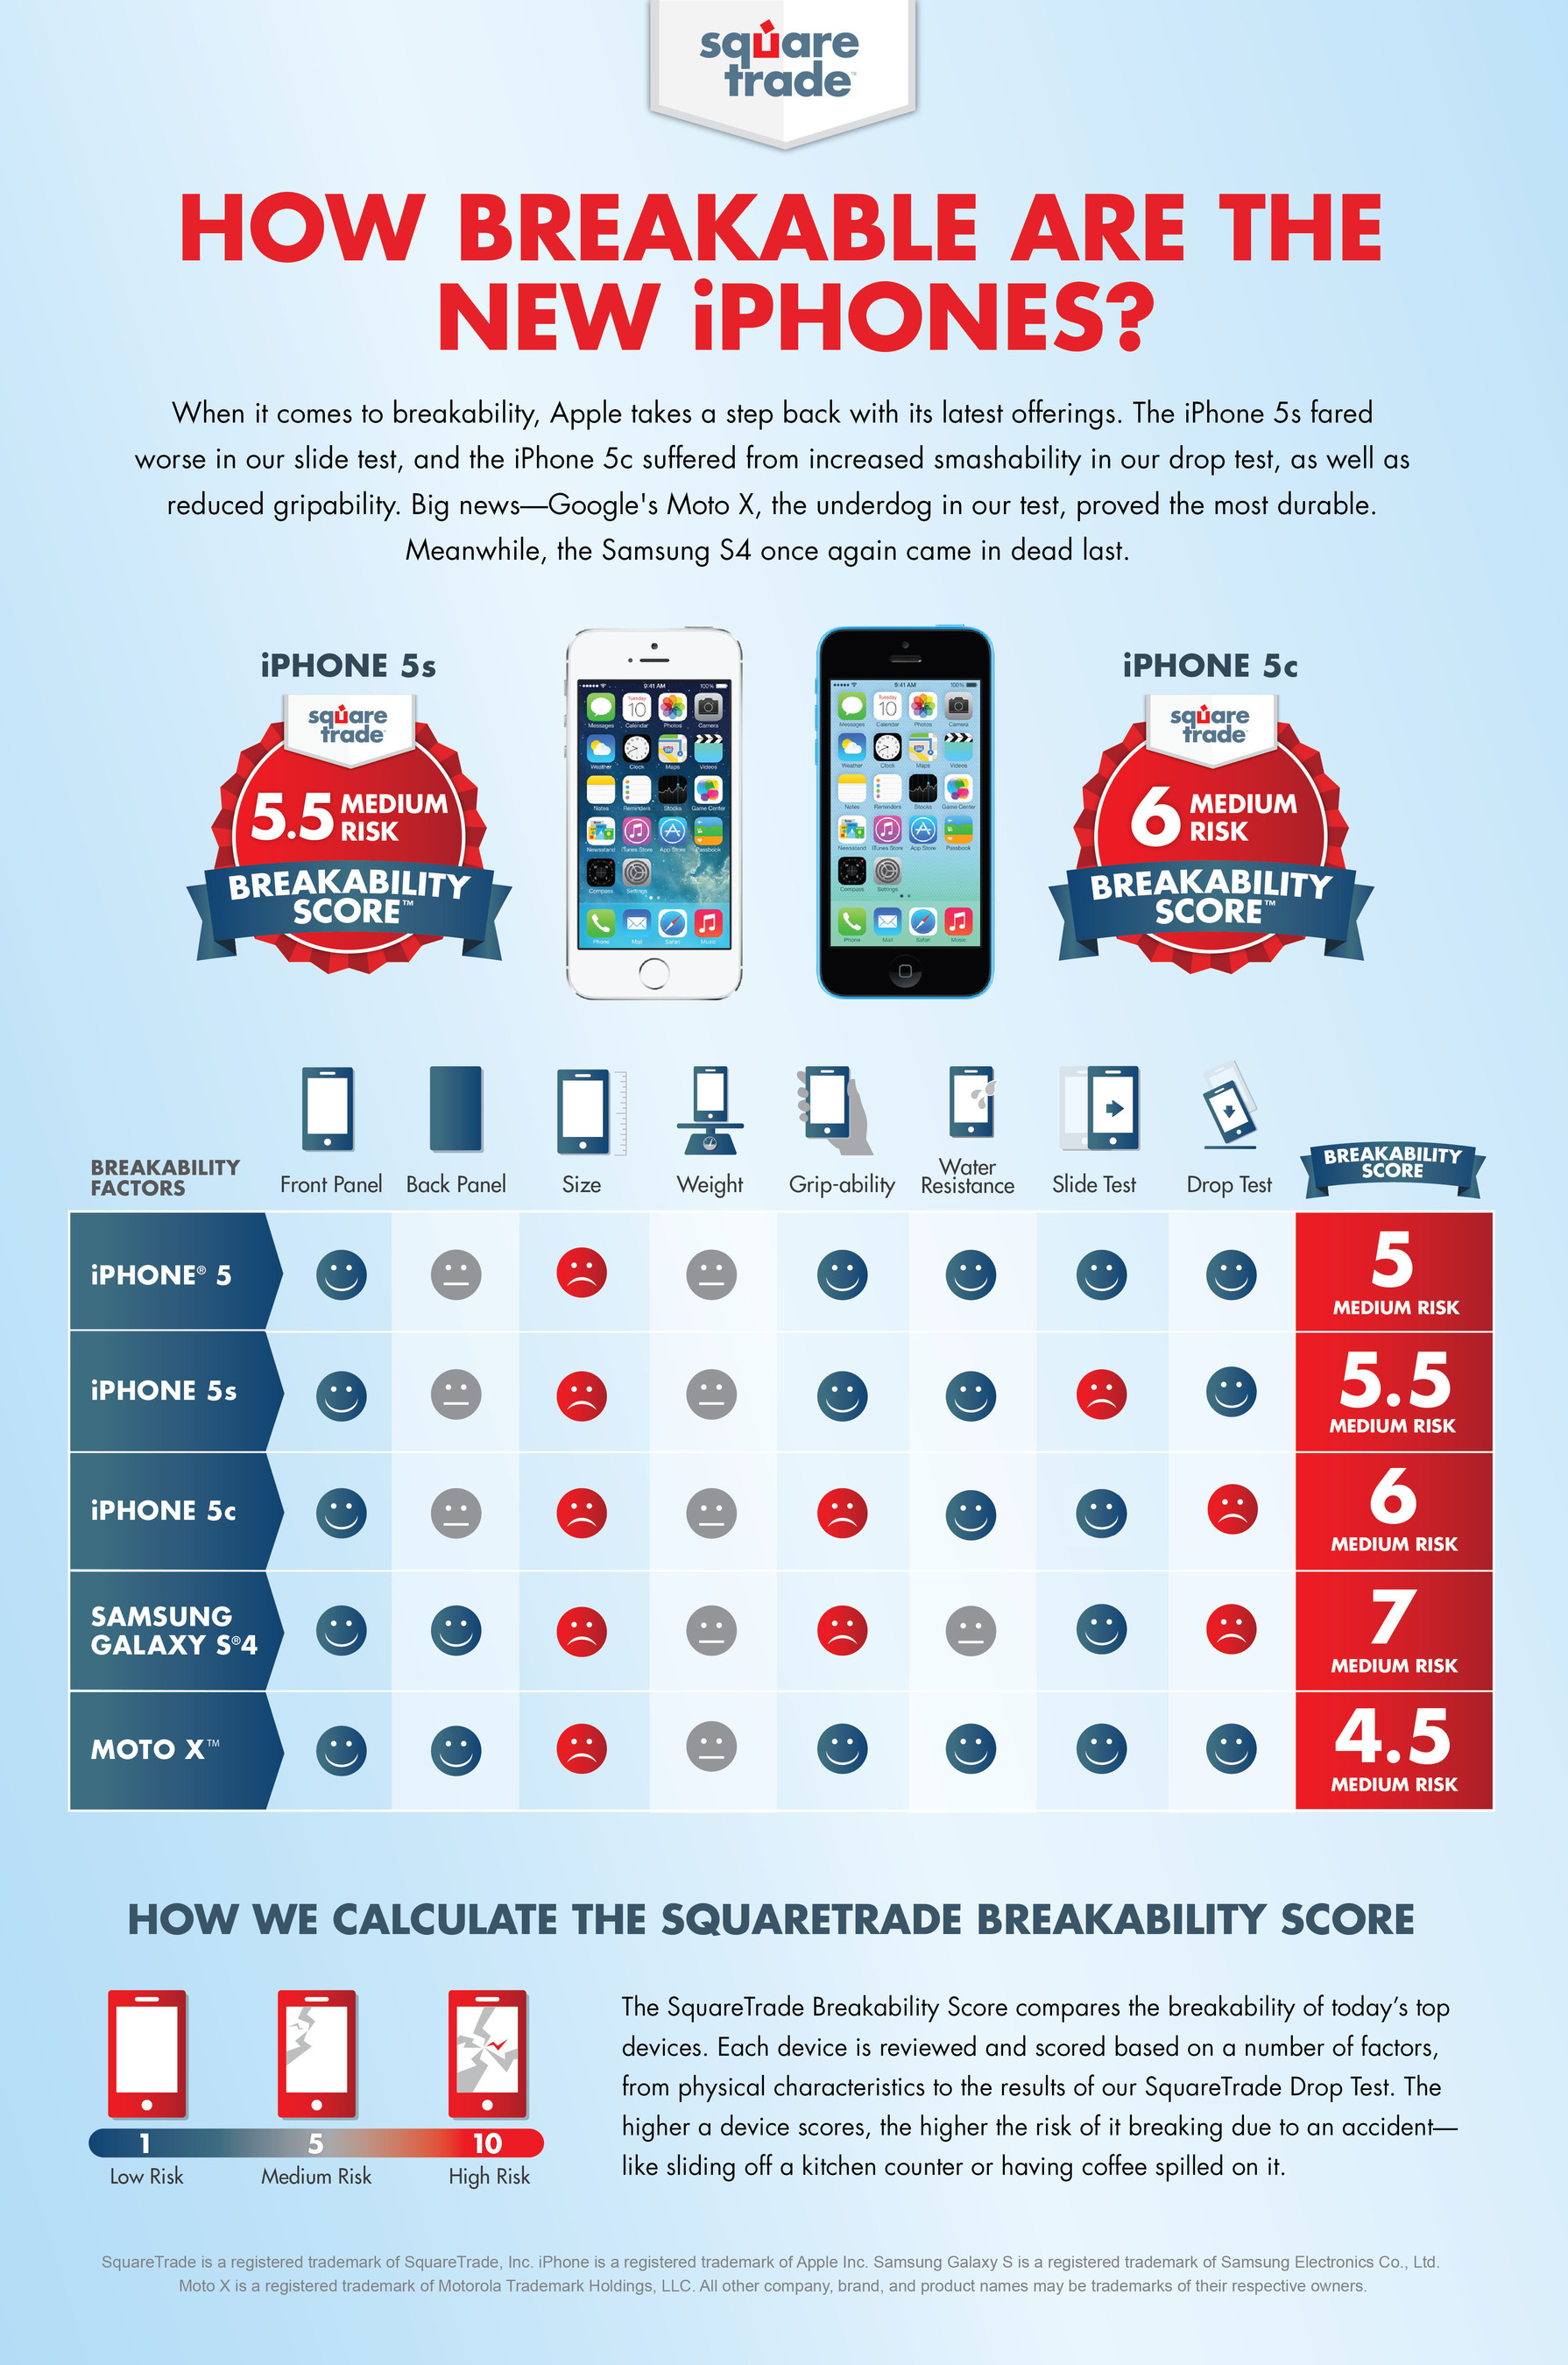 Google's Moto X Trumps Apple's New iPhones in Latest Breakability Score from SquareTrade.  (PRNewsFoto/SquareTrade)